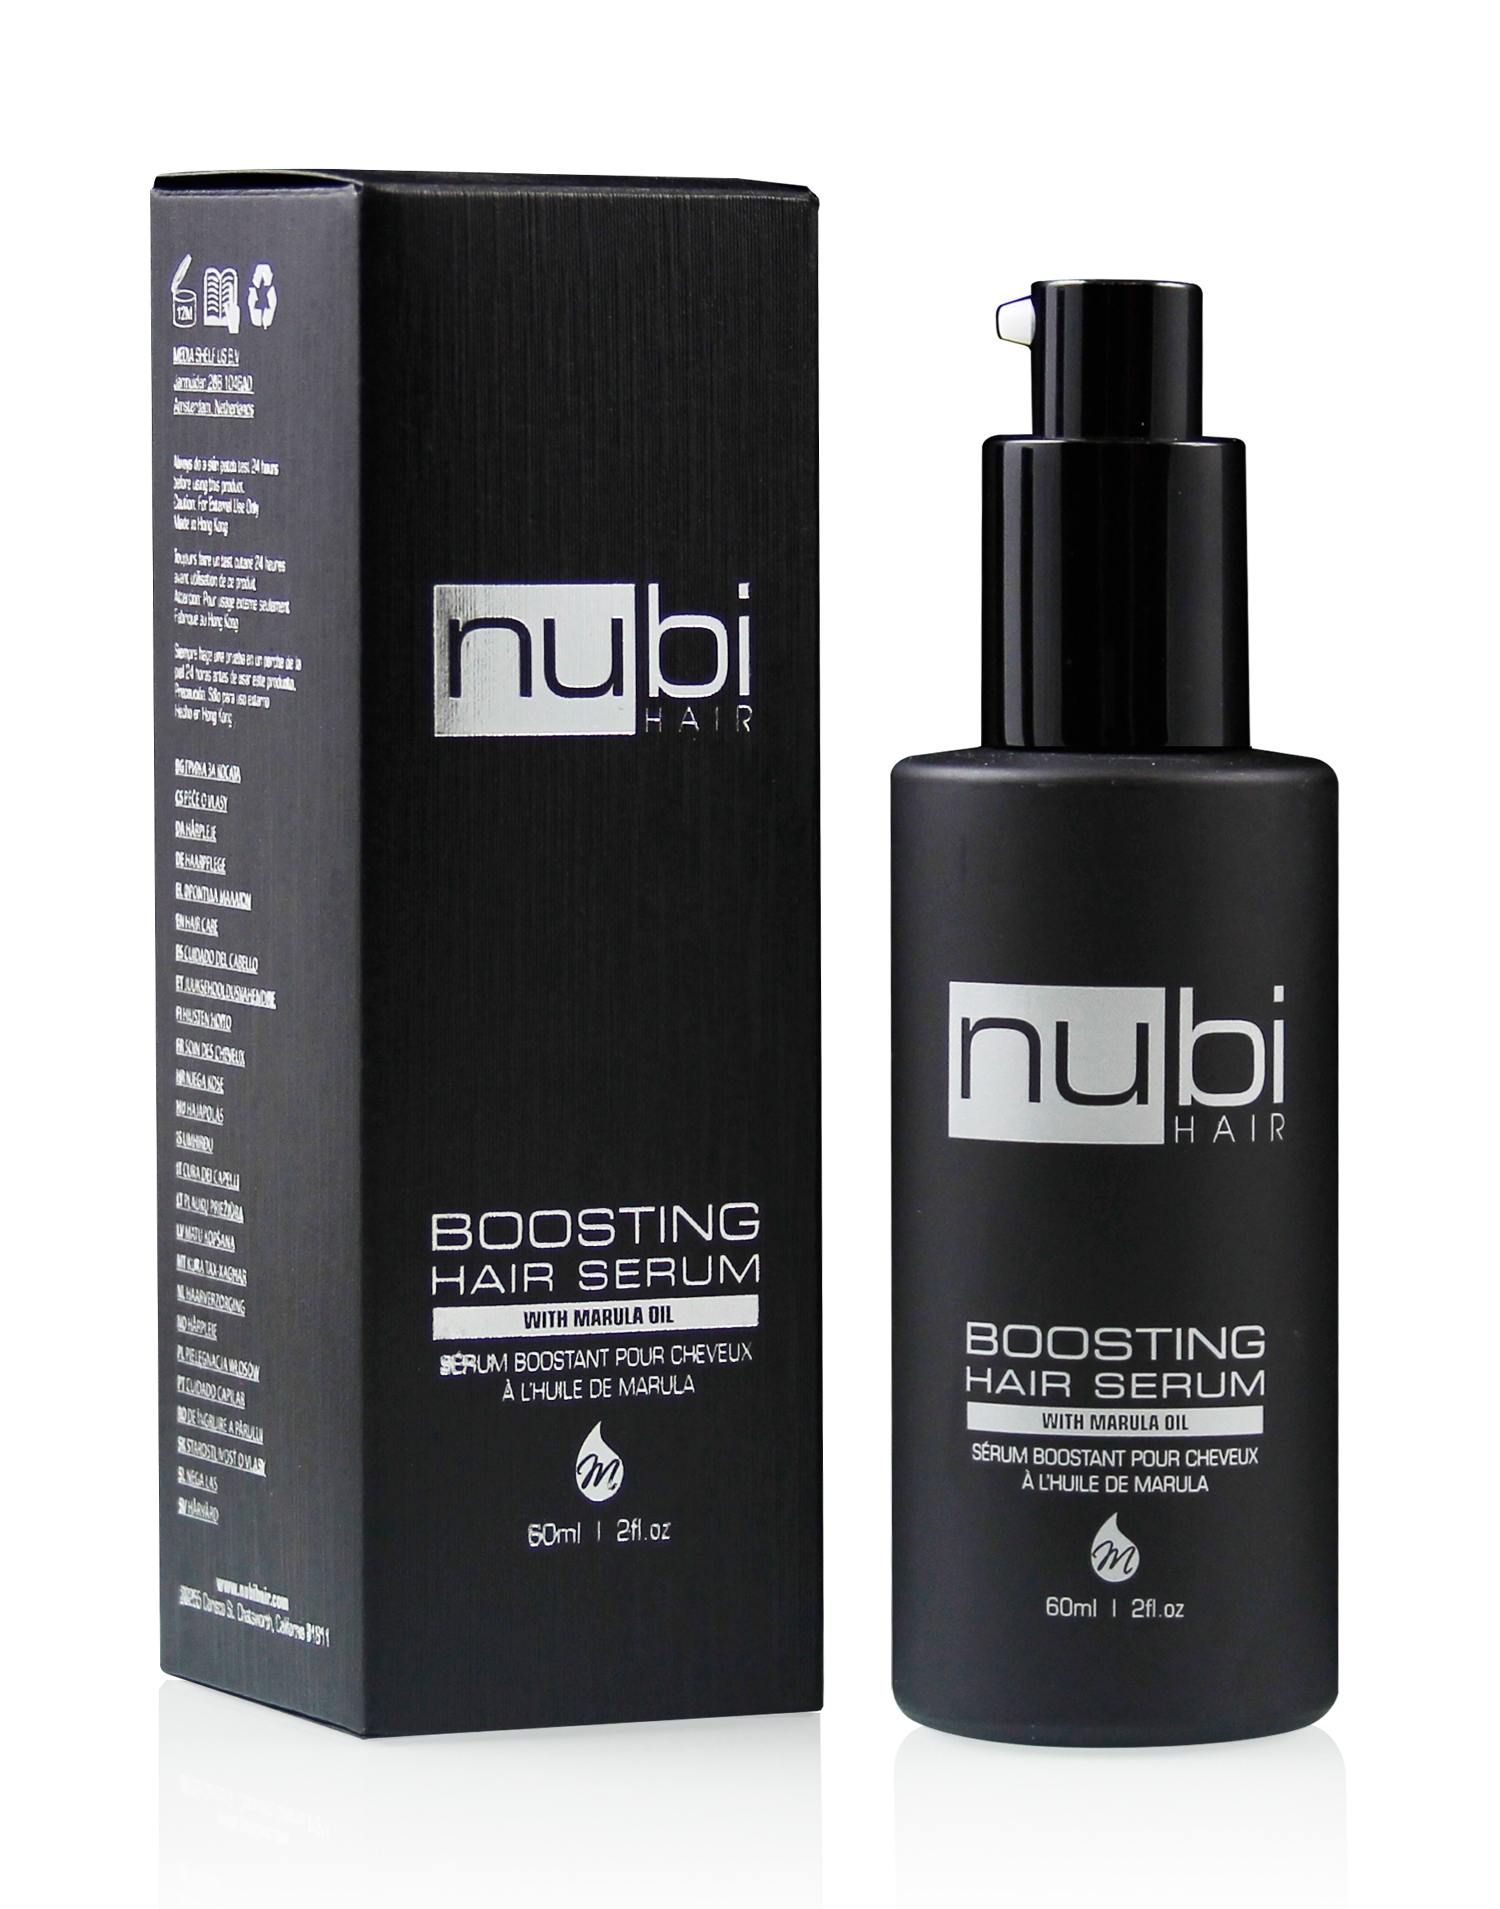 nubi hair serum with box